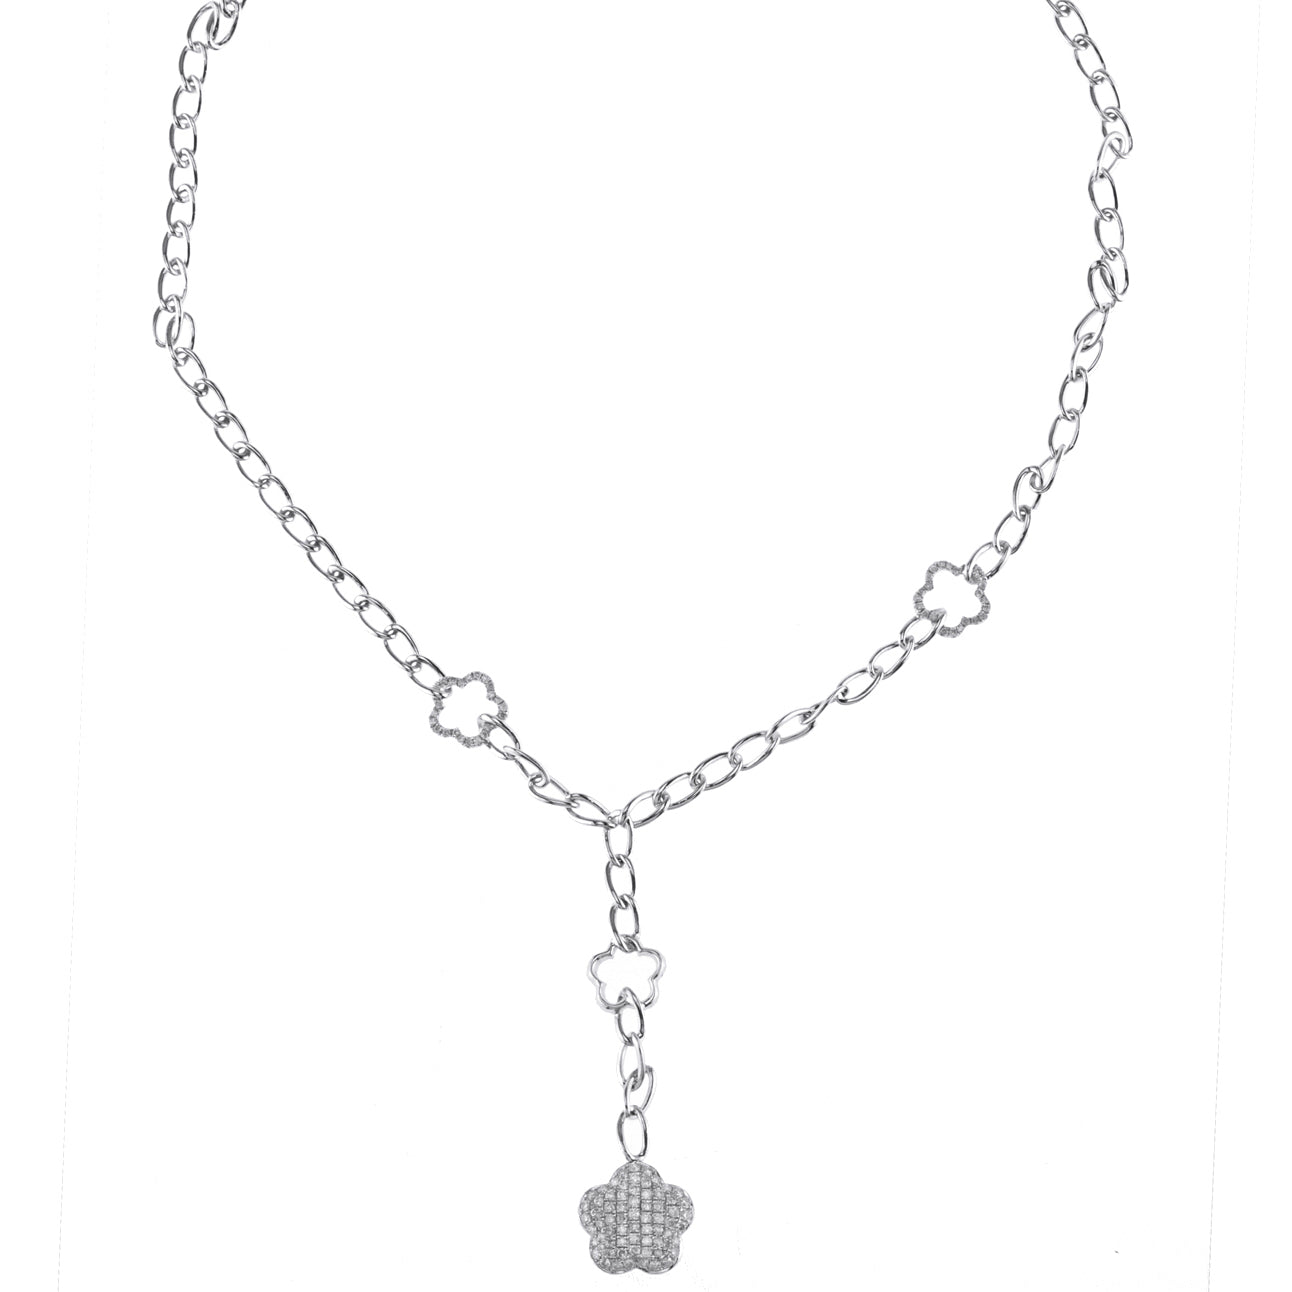 18K White Gold Chain with Diamonds and Star Pendant 1.43CT